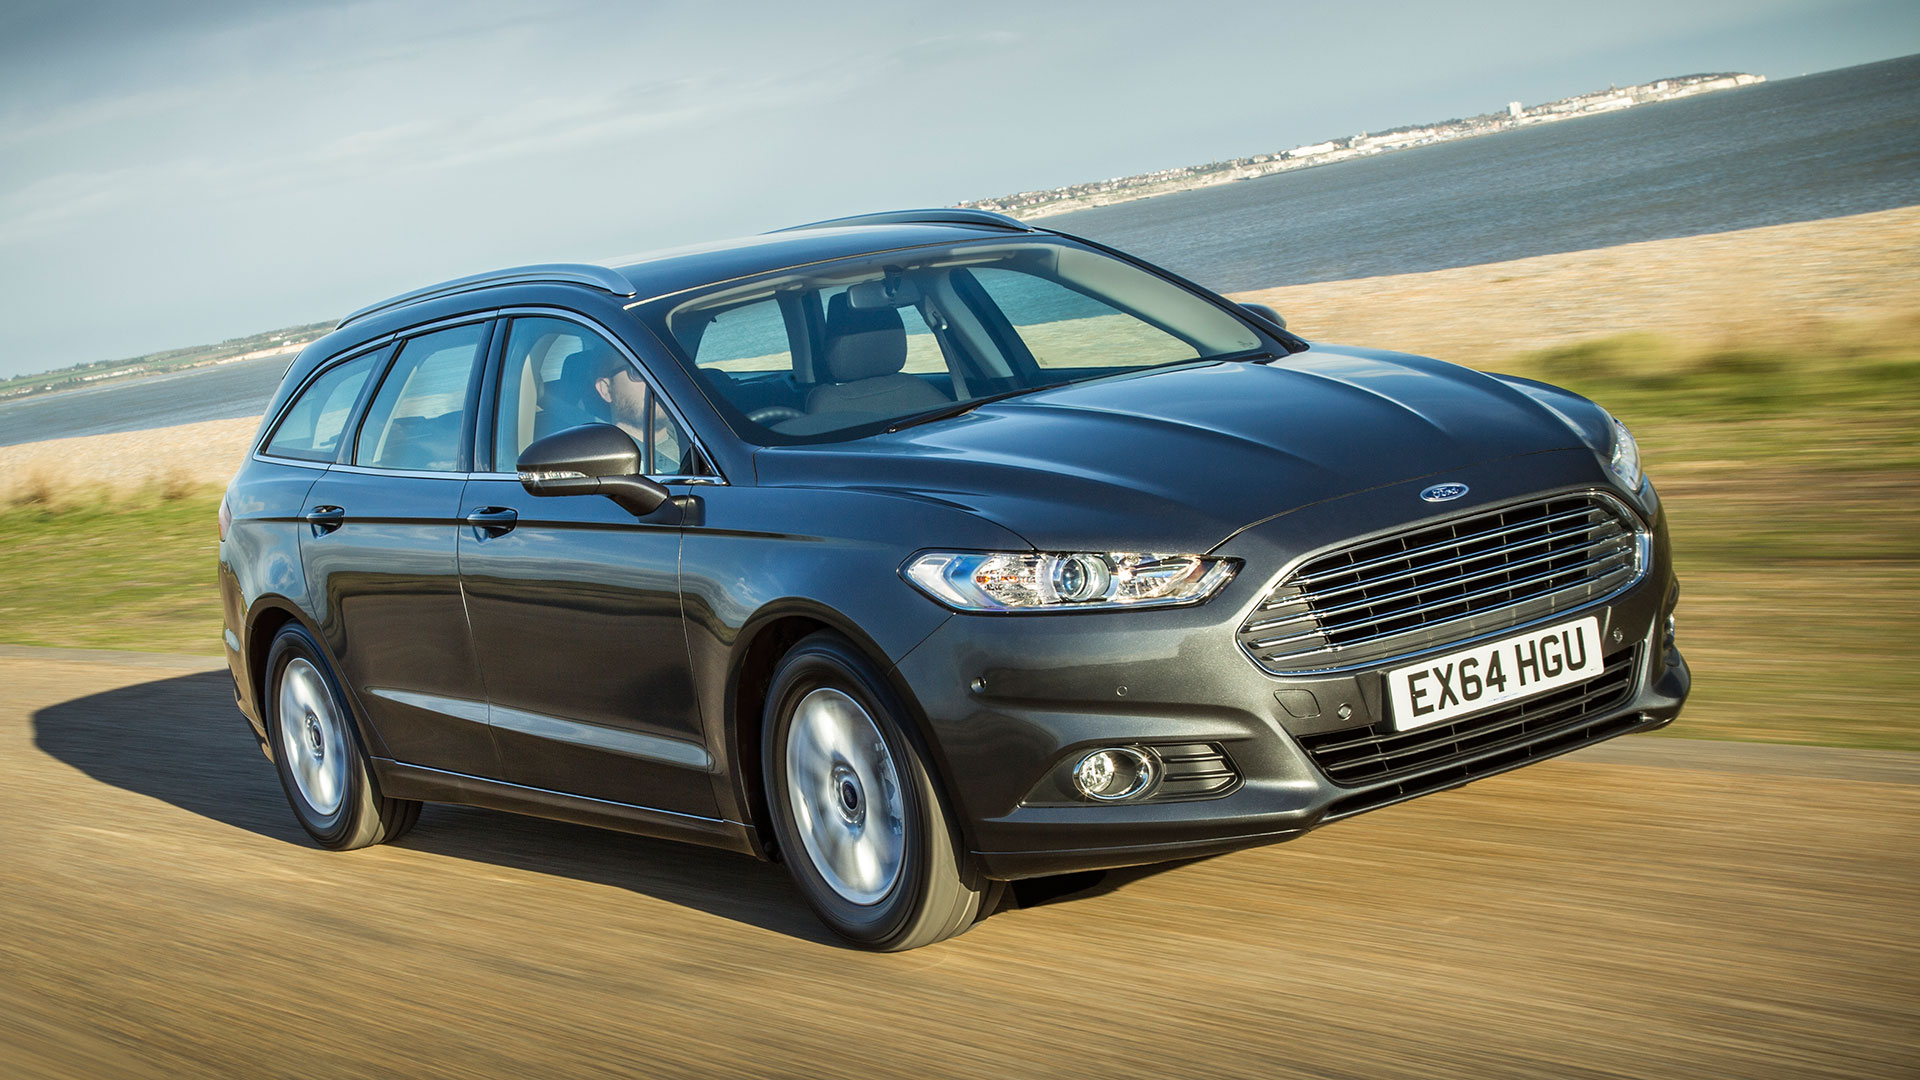 Ford Mondeo Estate ride comfort & New Ford Mondeo Estate Review u0026 Deals | Auto Trader UK markmcfarlin.com